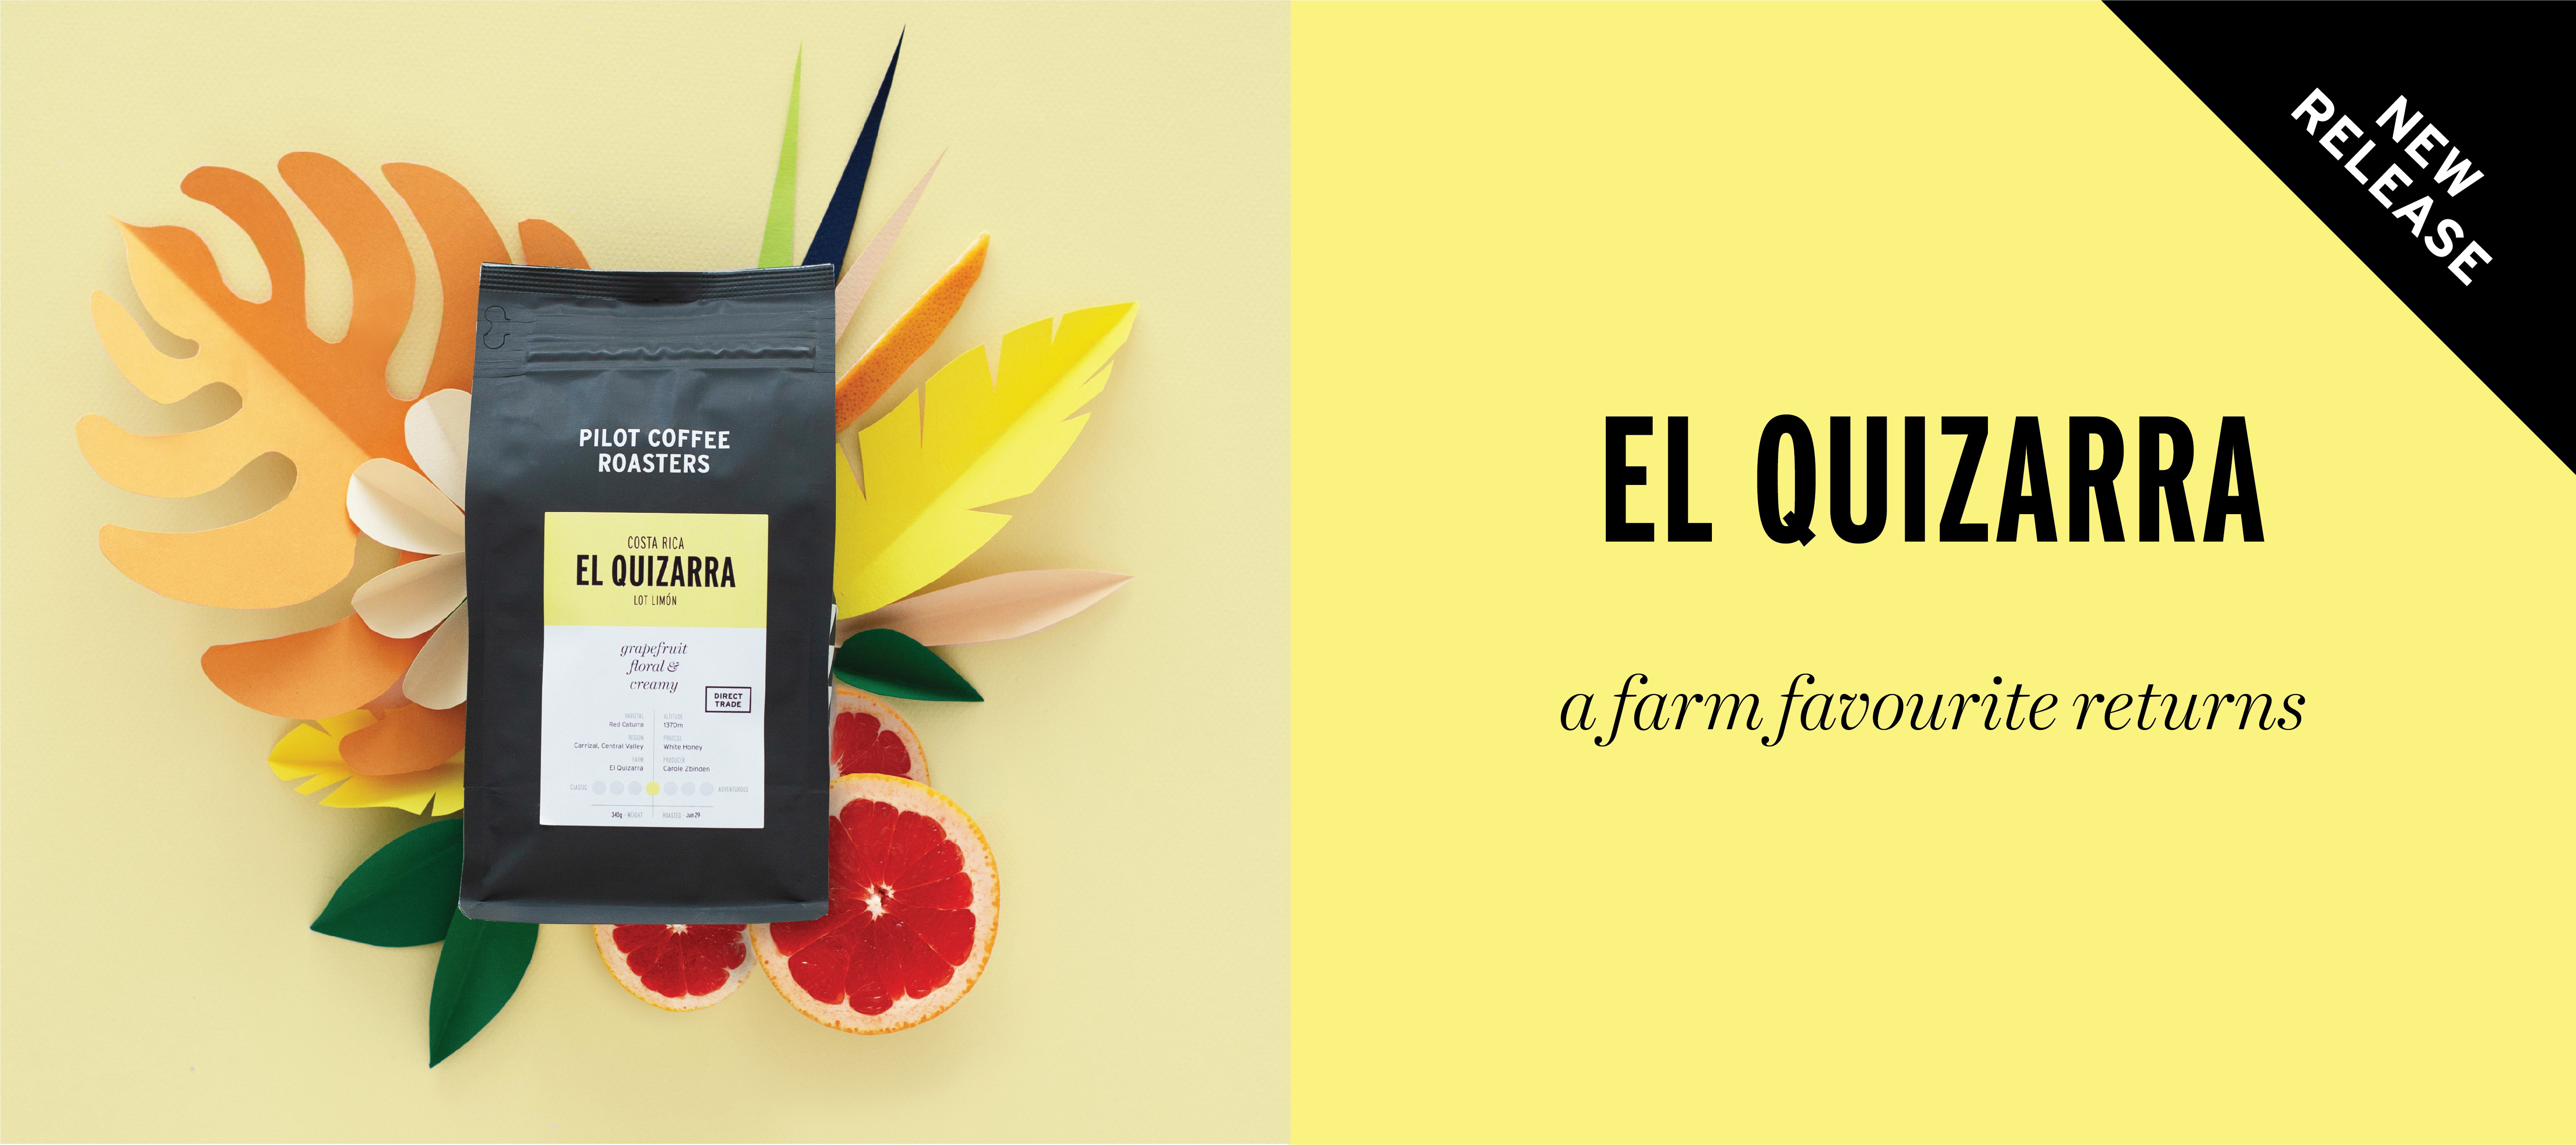 Just released a delicious new single origin coffee for the summer months